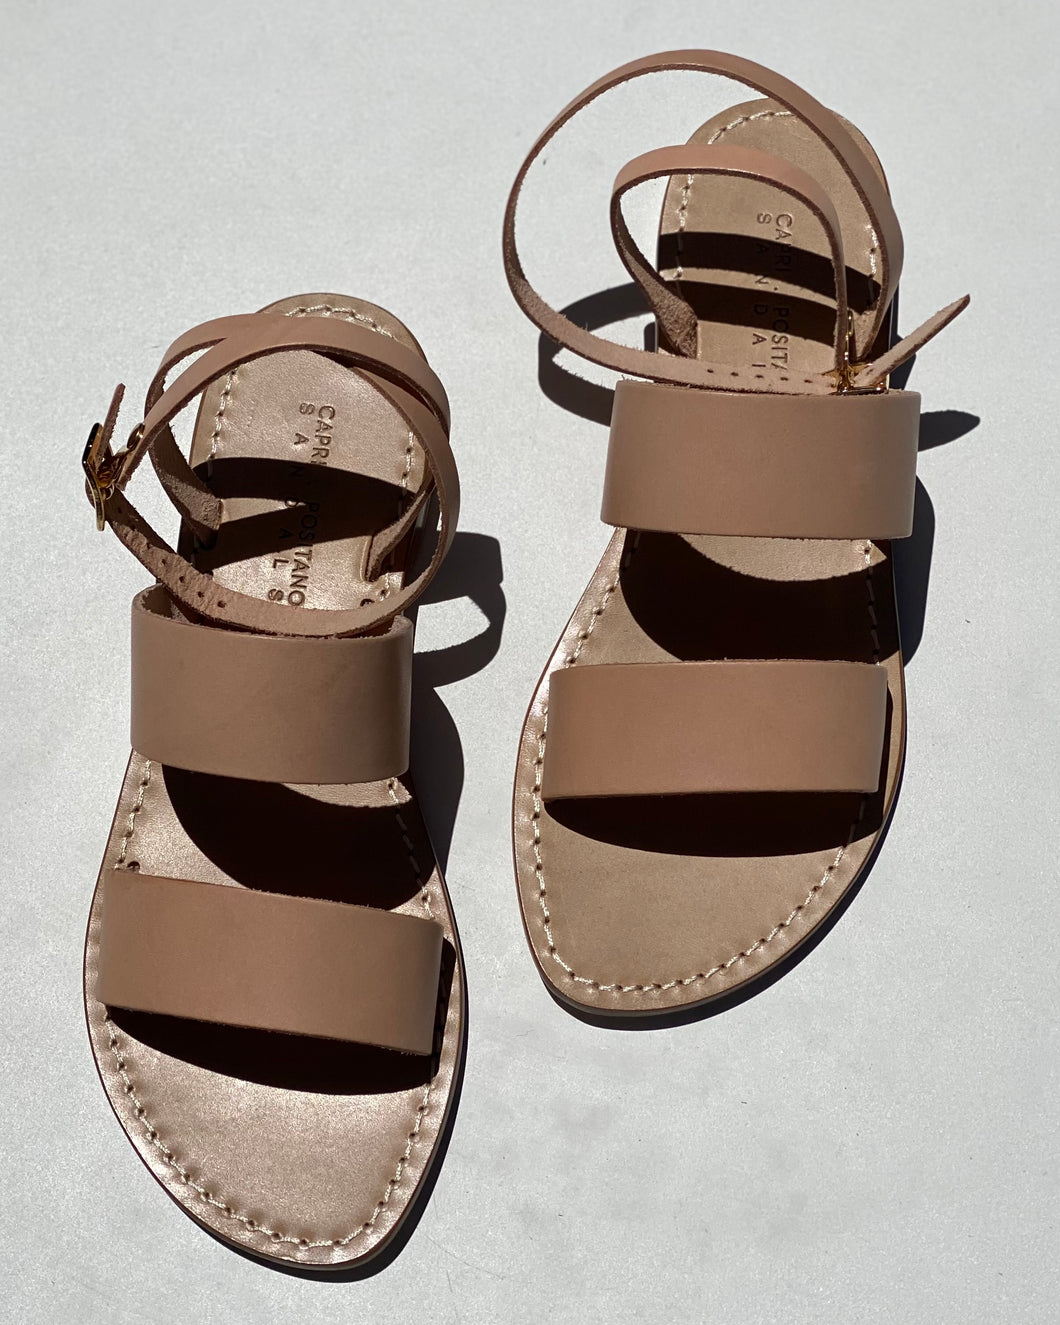 Classic Band Sandals by Capri Positano